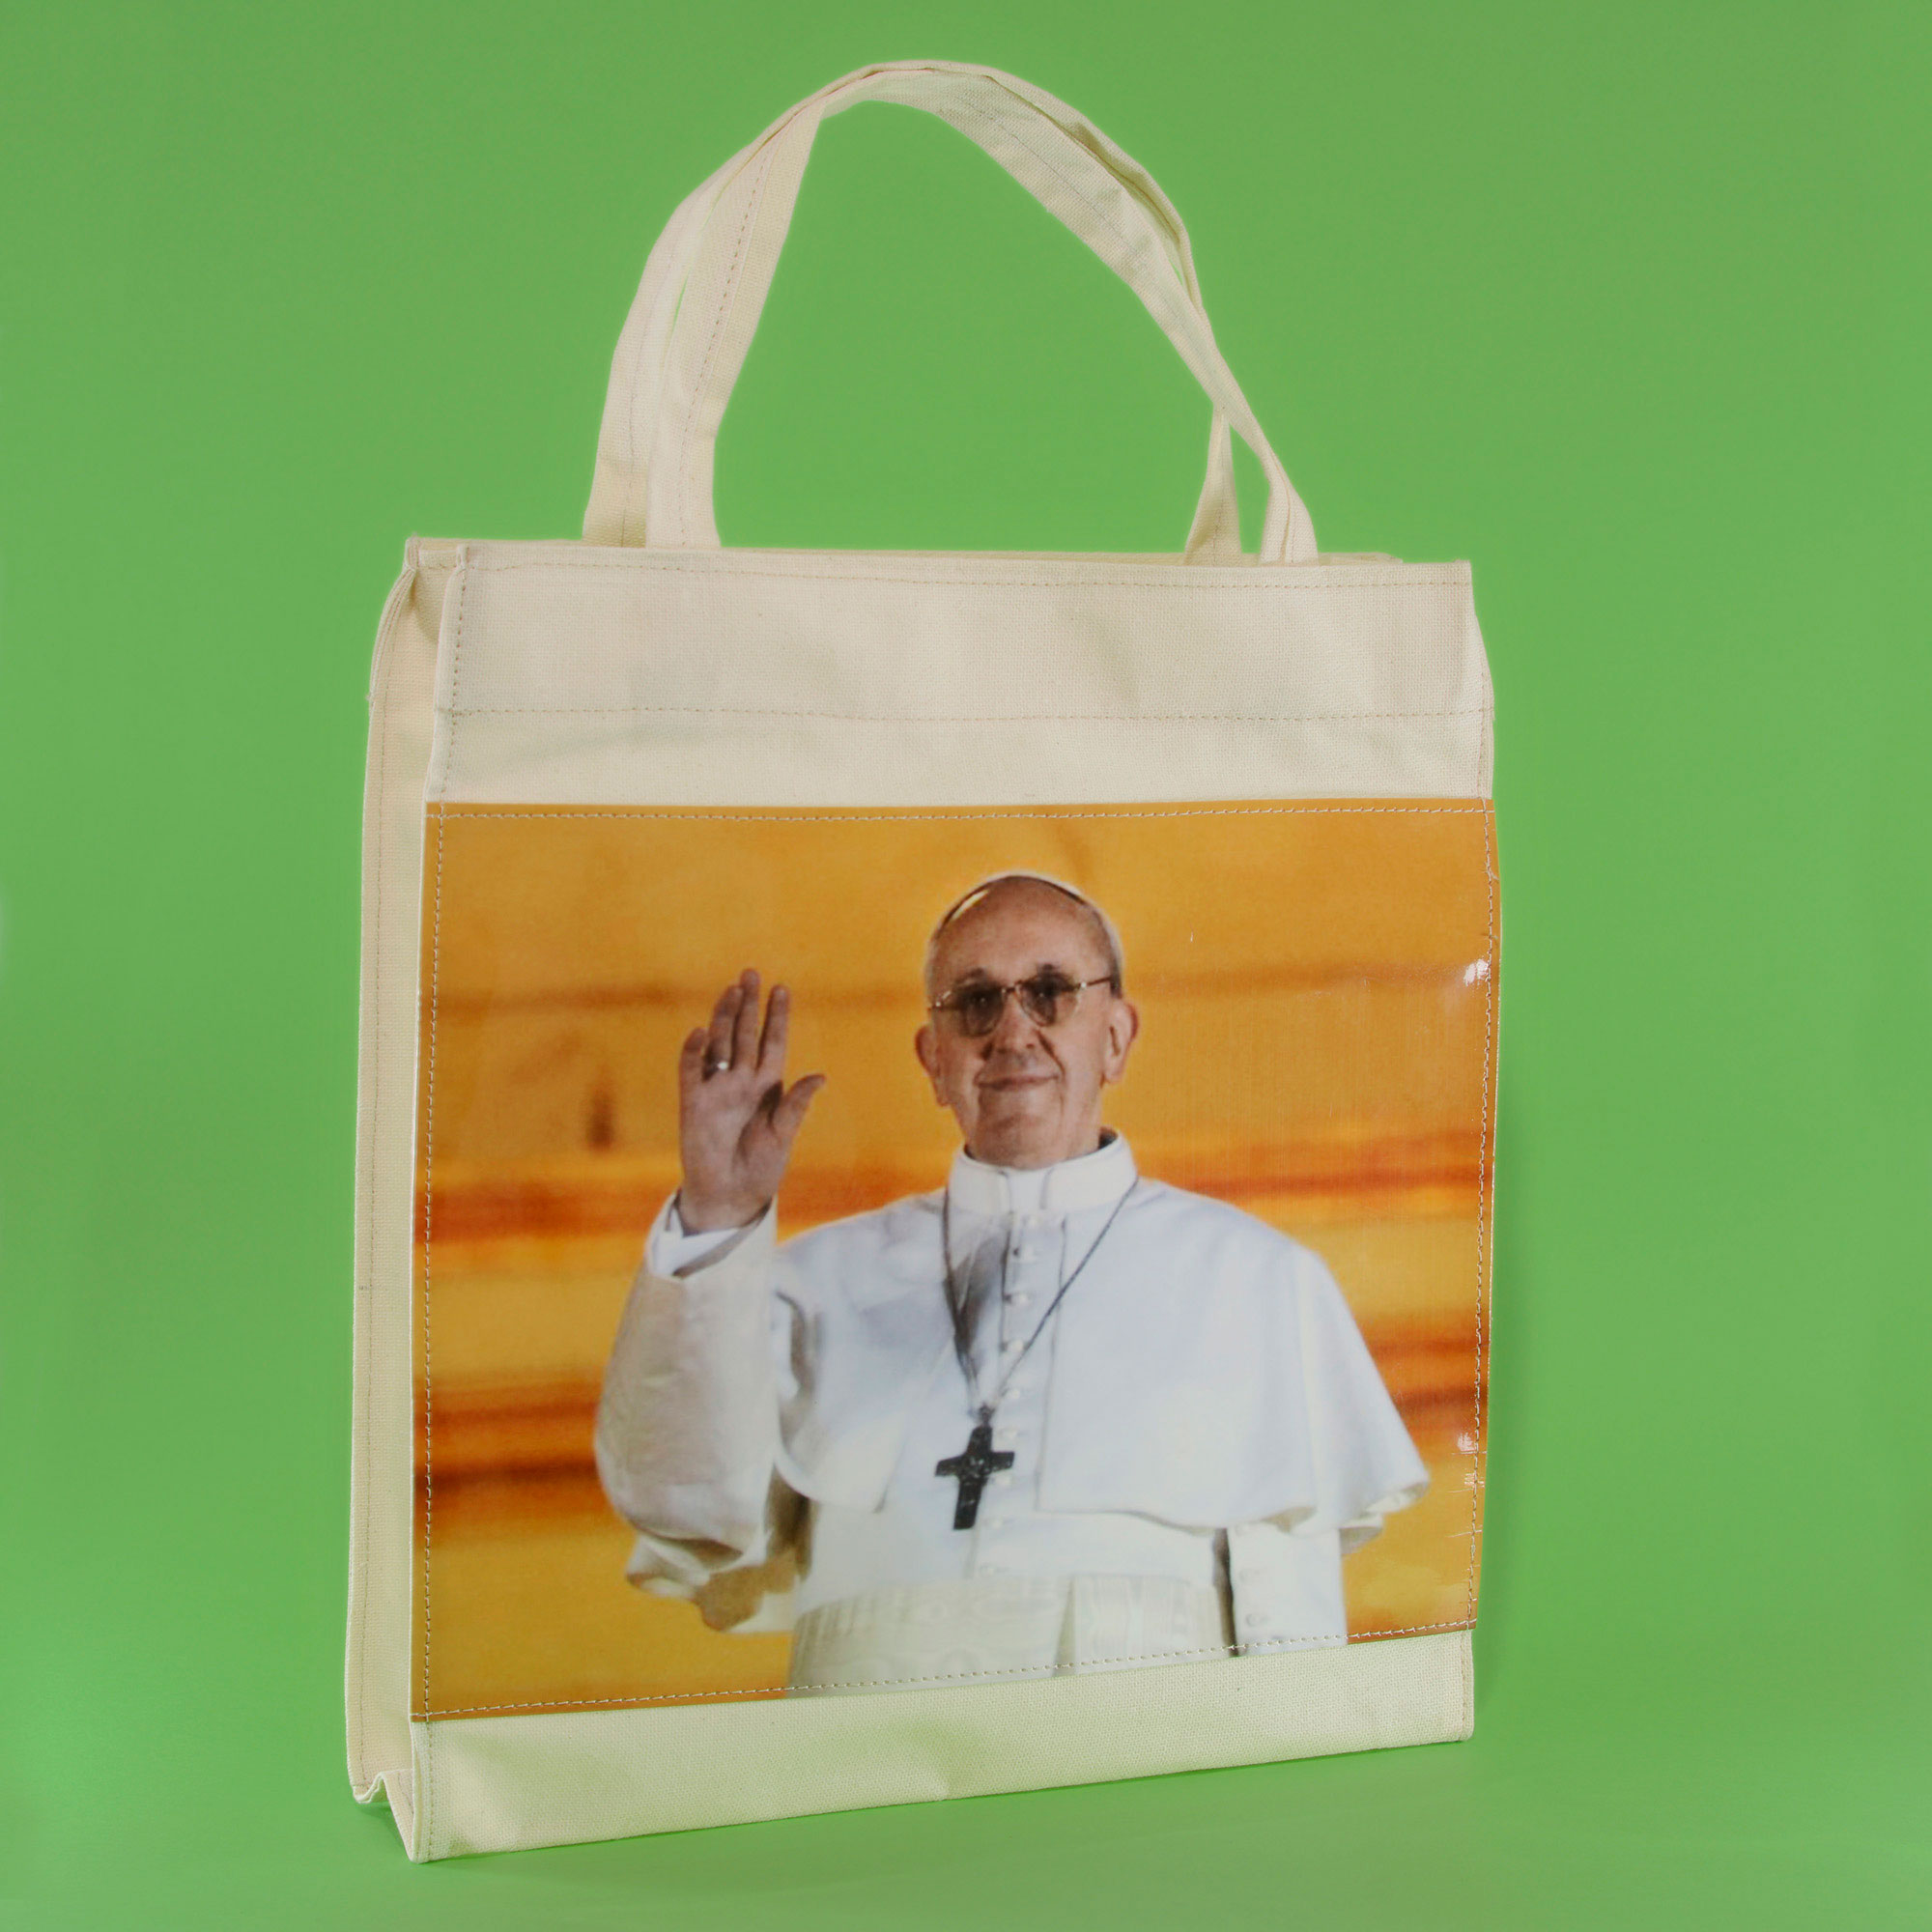 Tote bag with plastic photograph of Pope Francis.